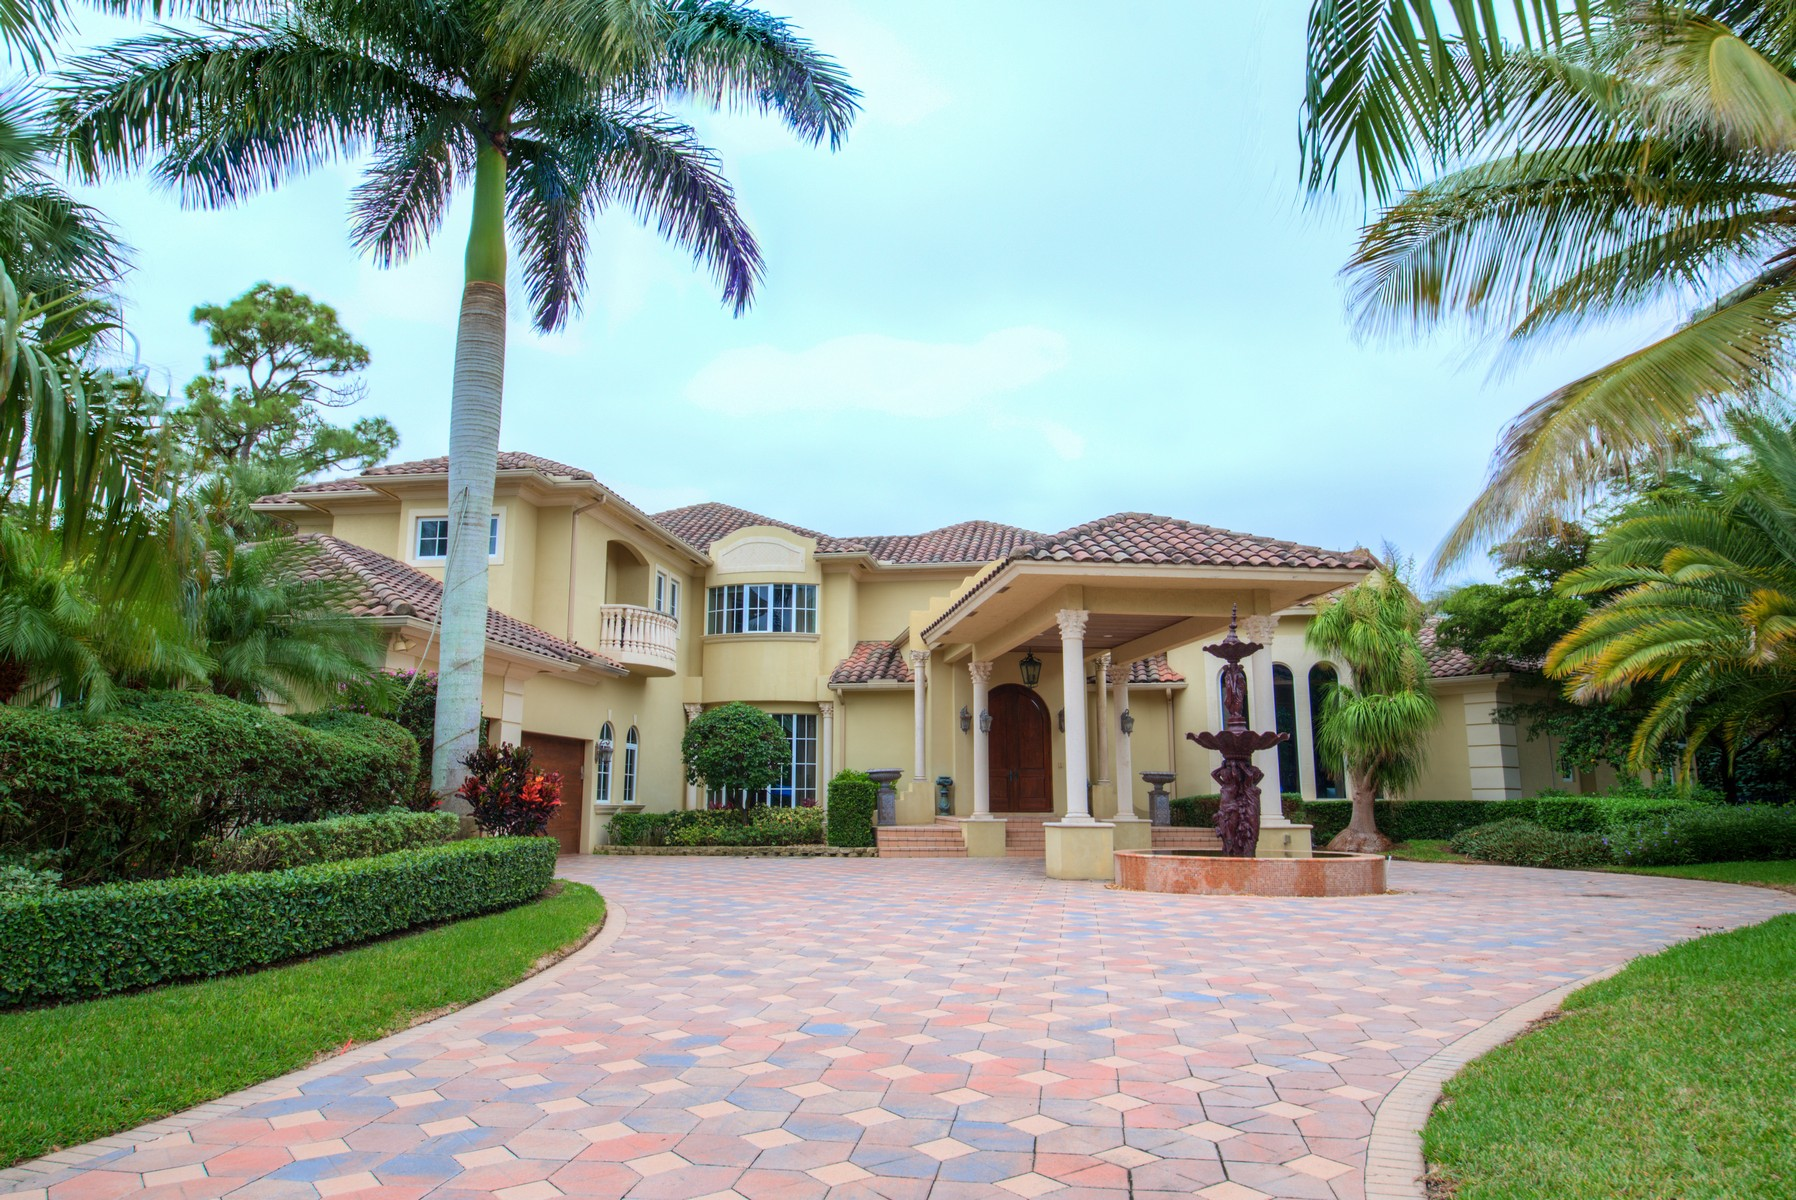 Casa Unifamiliar por un Venta en 1631 Flagler Parkway West Palm Beach, Florida 33411 Estados Unidos